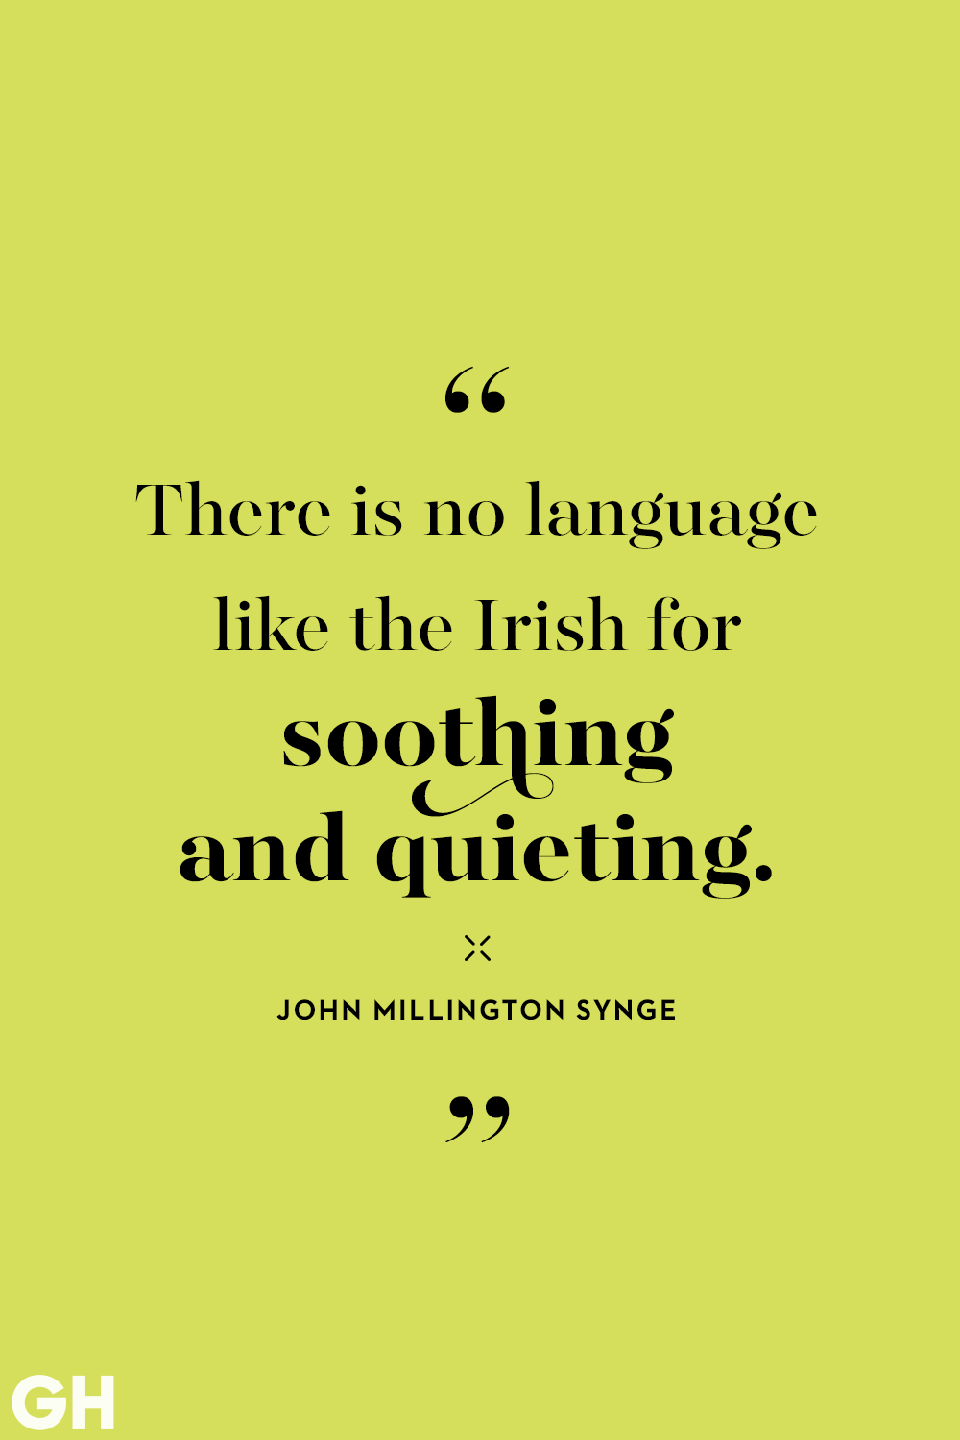 <p>There is no language like the Irish for soothing and quieting.</p>